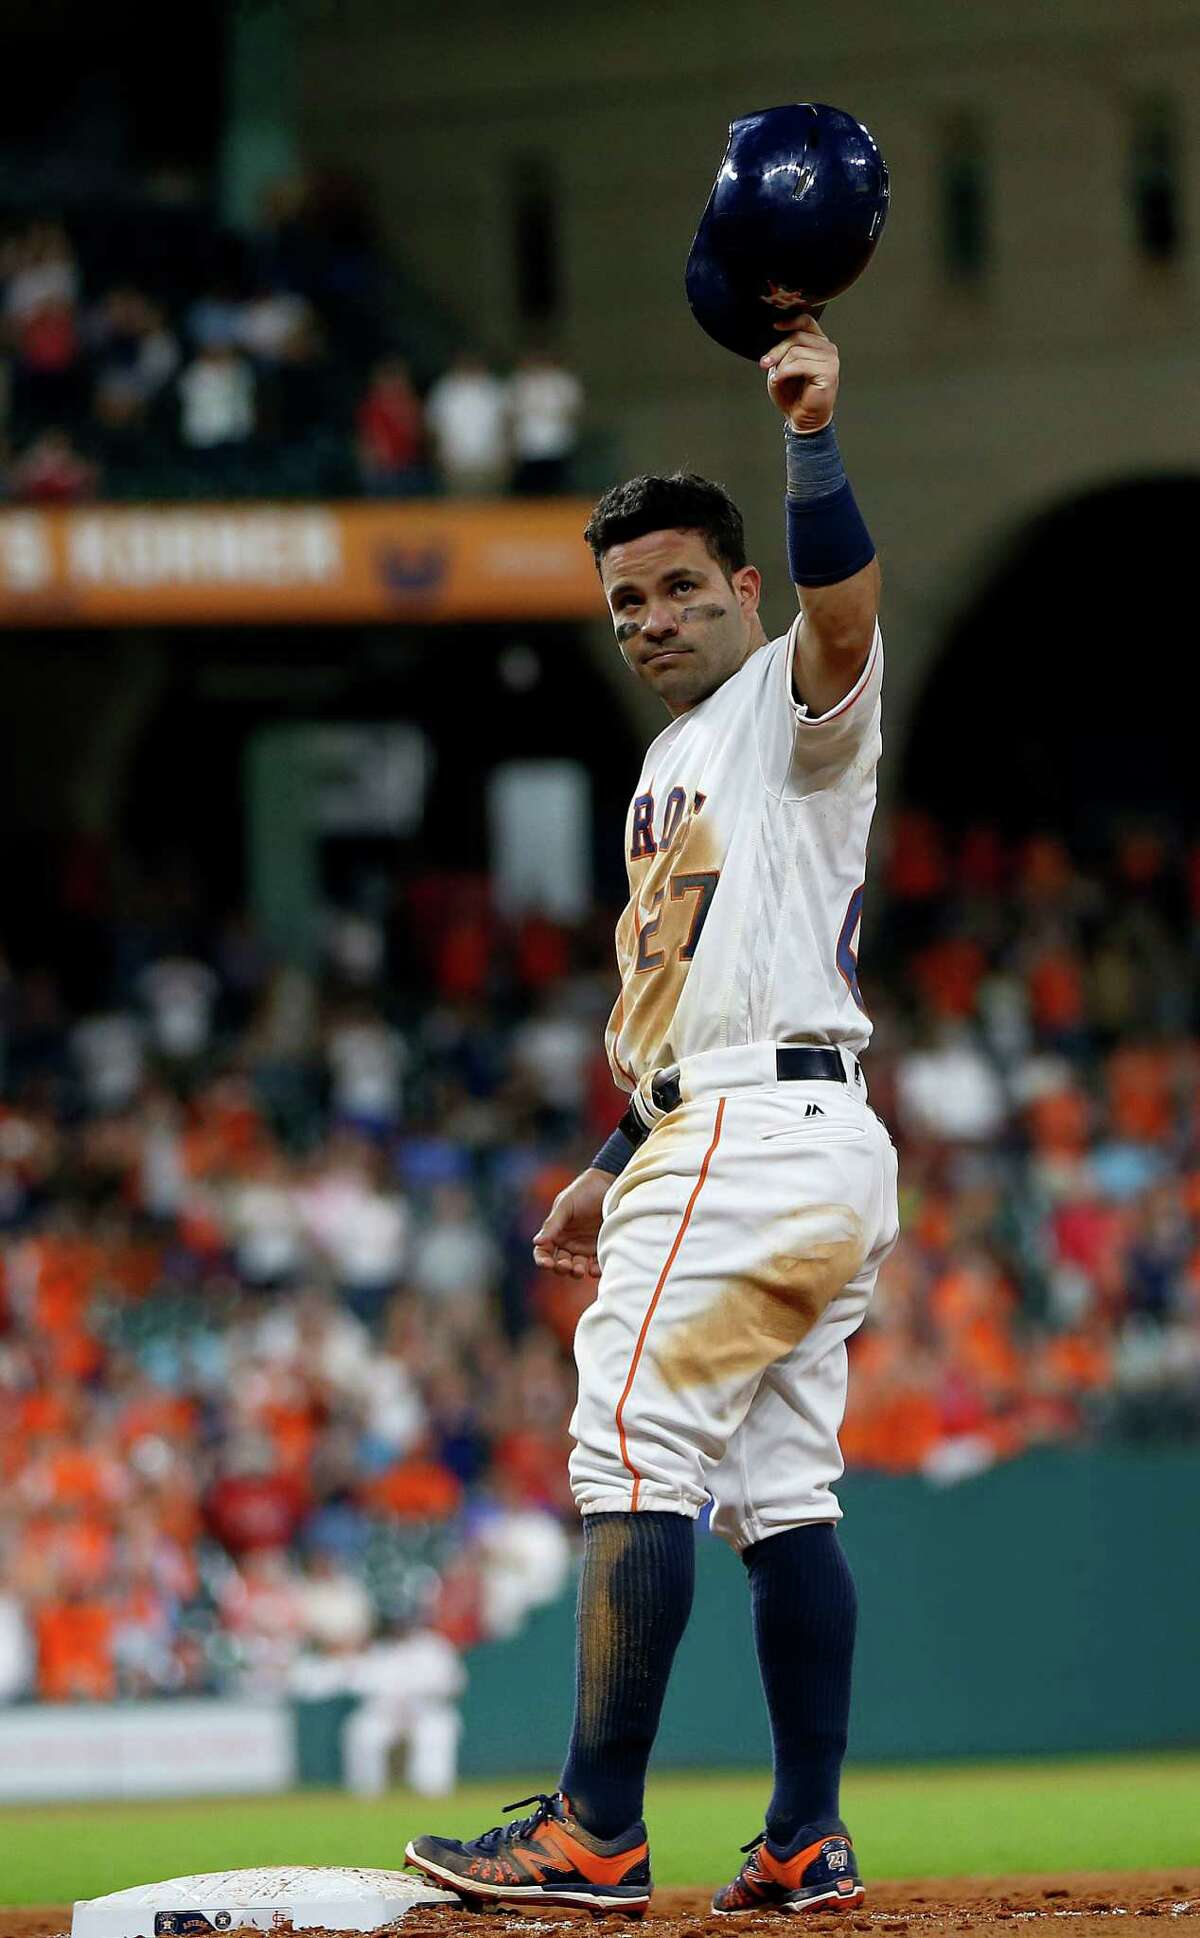 Aug. 16: Cardinals 8, Astros 5 Houston Astros Jose Altuve (27) acknowledges the crowd after getting his 1,000th hit, a single during the ninth inning of an MLB game at Minute Maid Park,Tuesday, Aug. 16, 2016, in Houston.